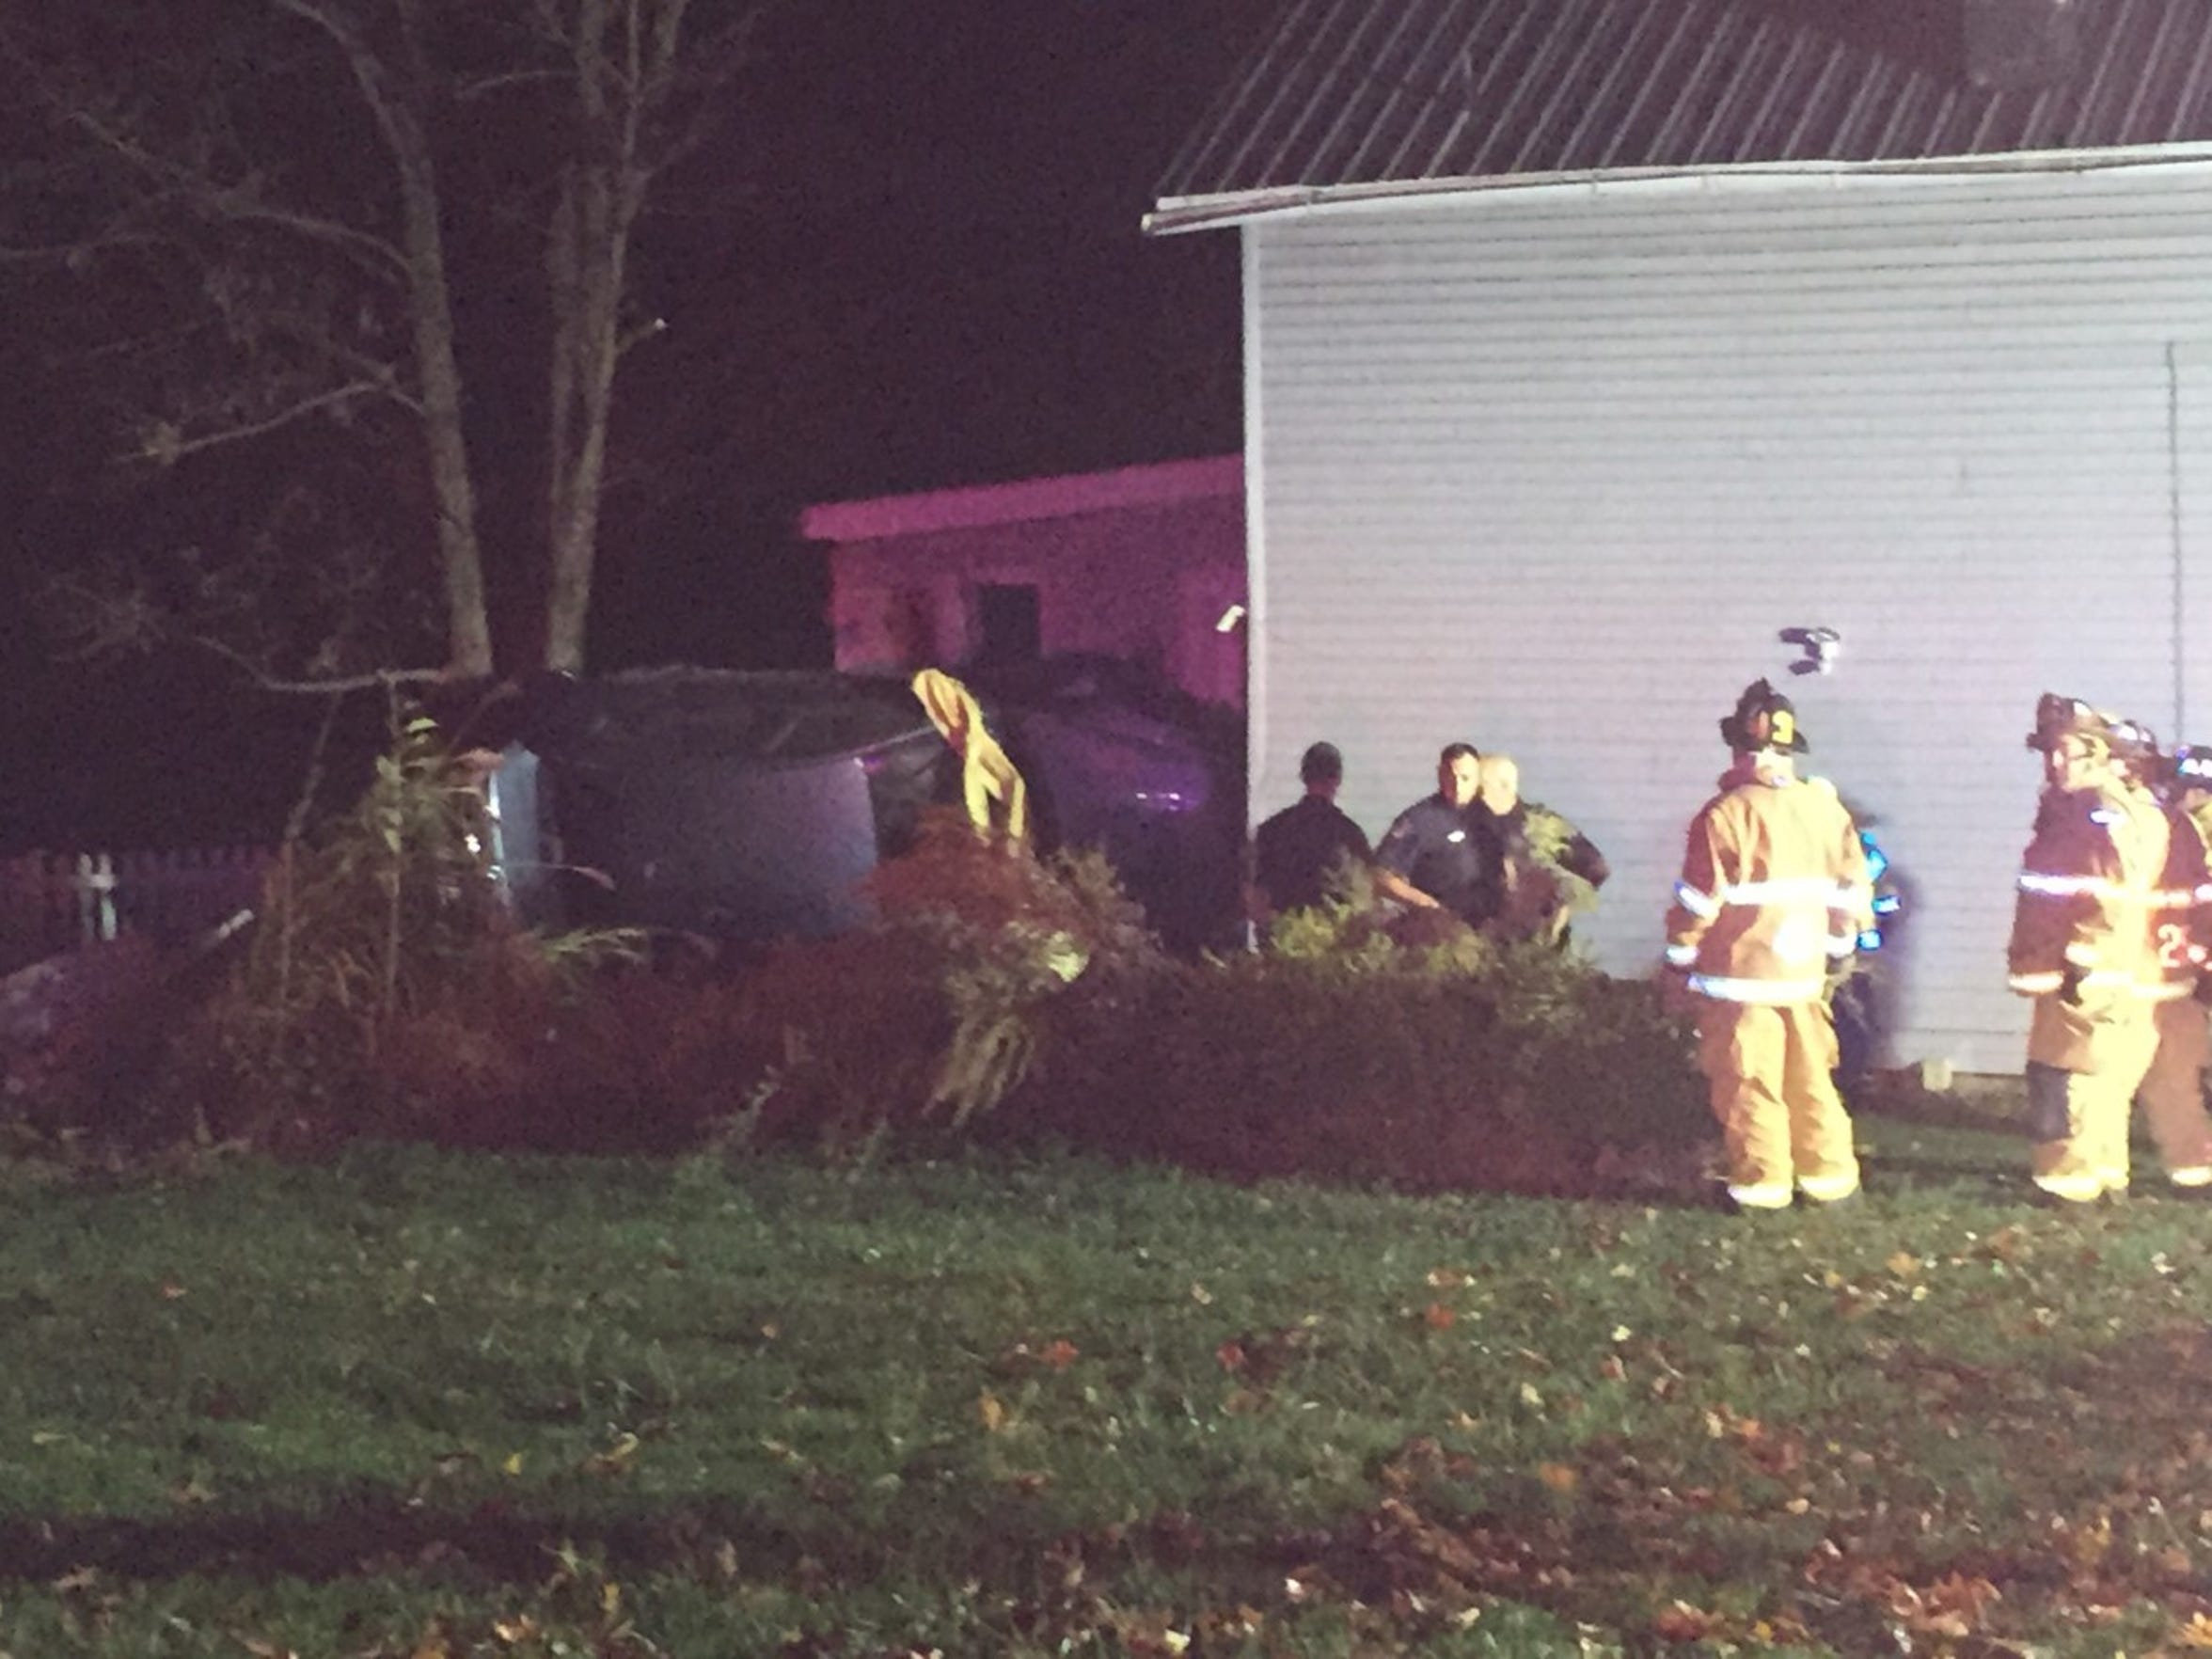 North Lebanon Township police and firefighters gather near a car that crashed into a house at 1446 N. Seventh Street after a high speed chase in November 2016.